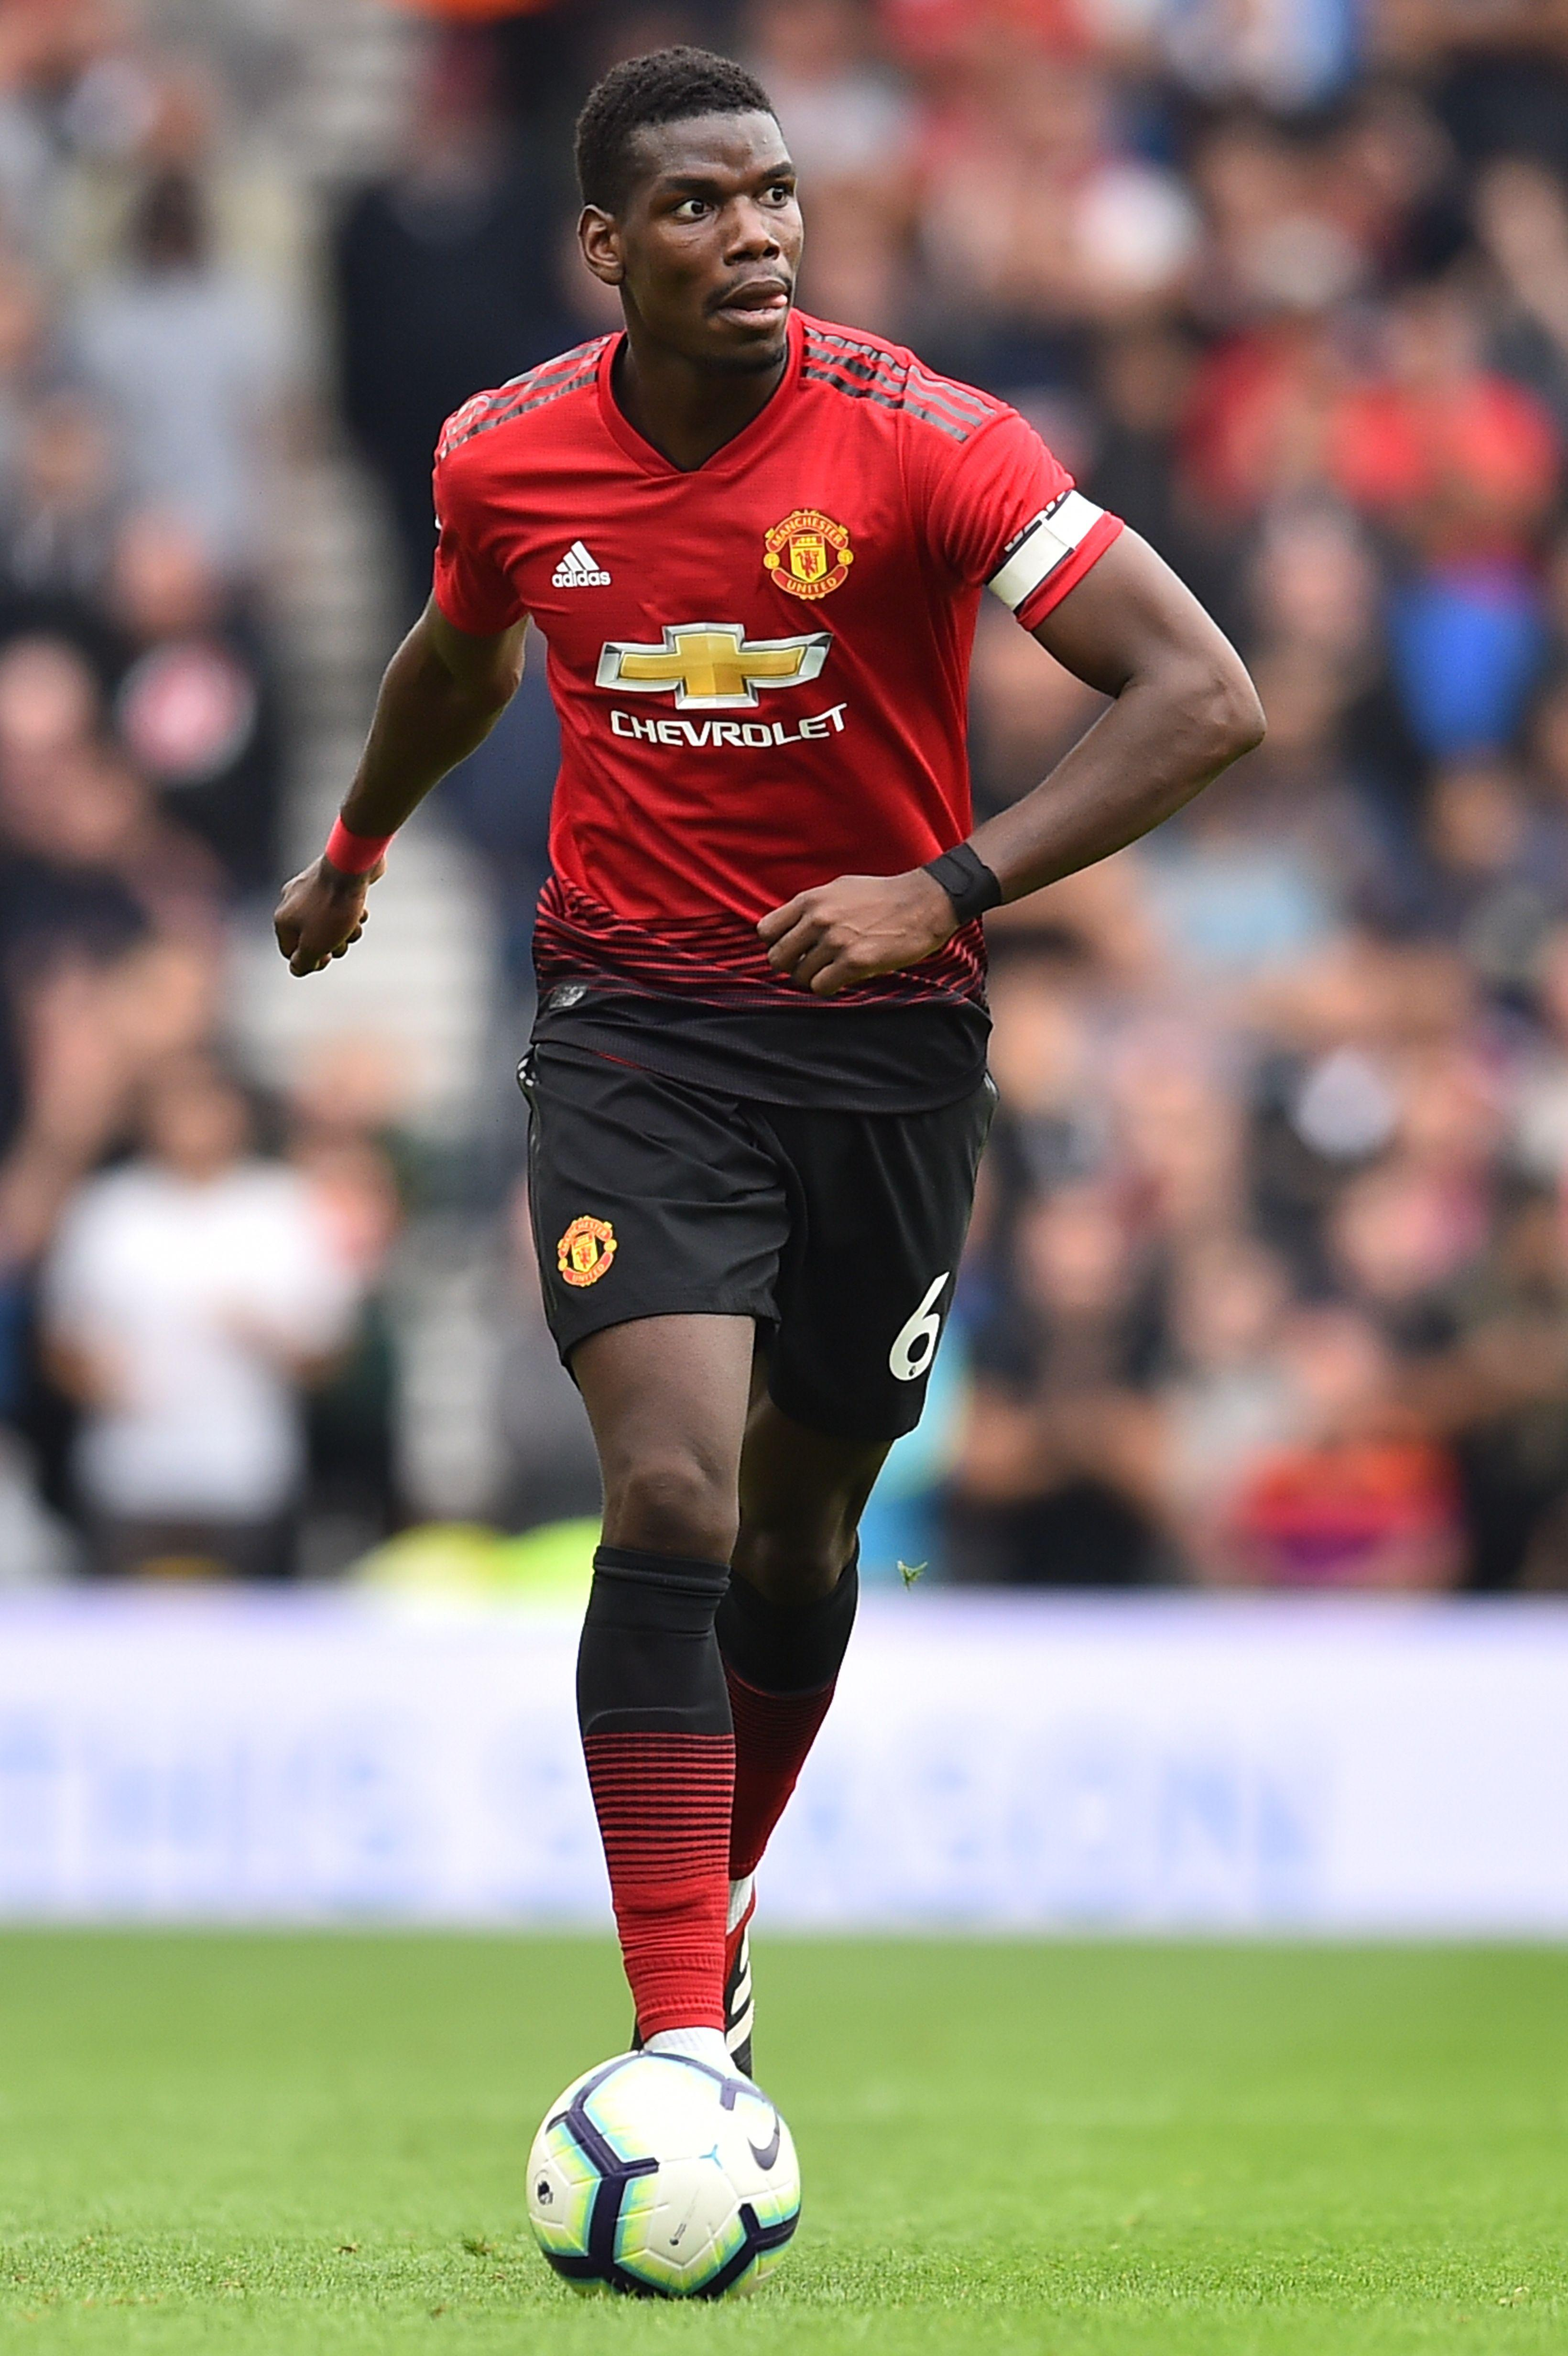 United are shelling out over £9m a year in wages to Paul Pogba